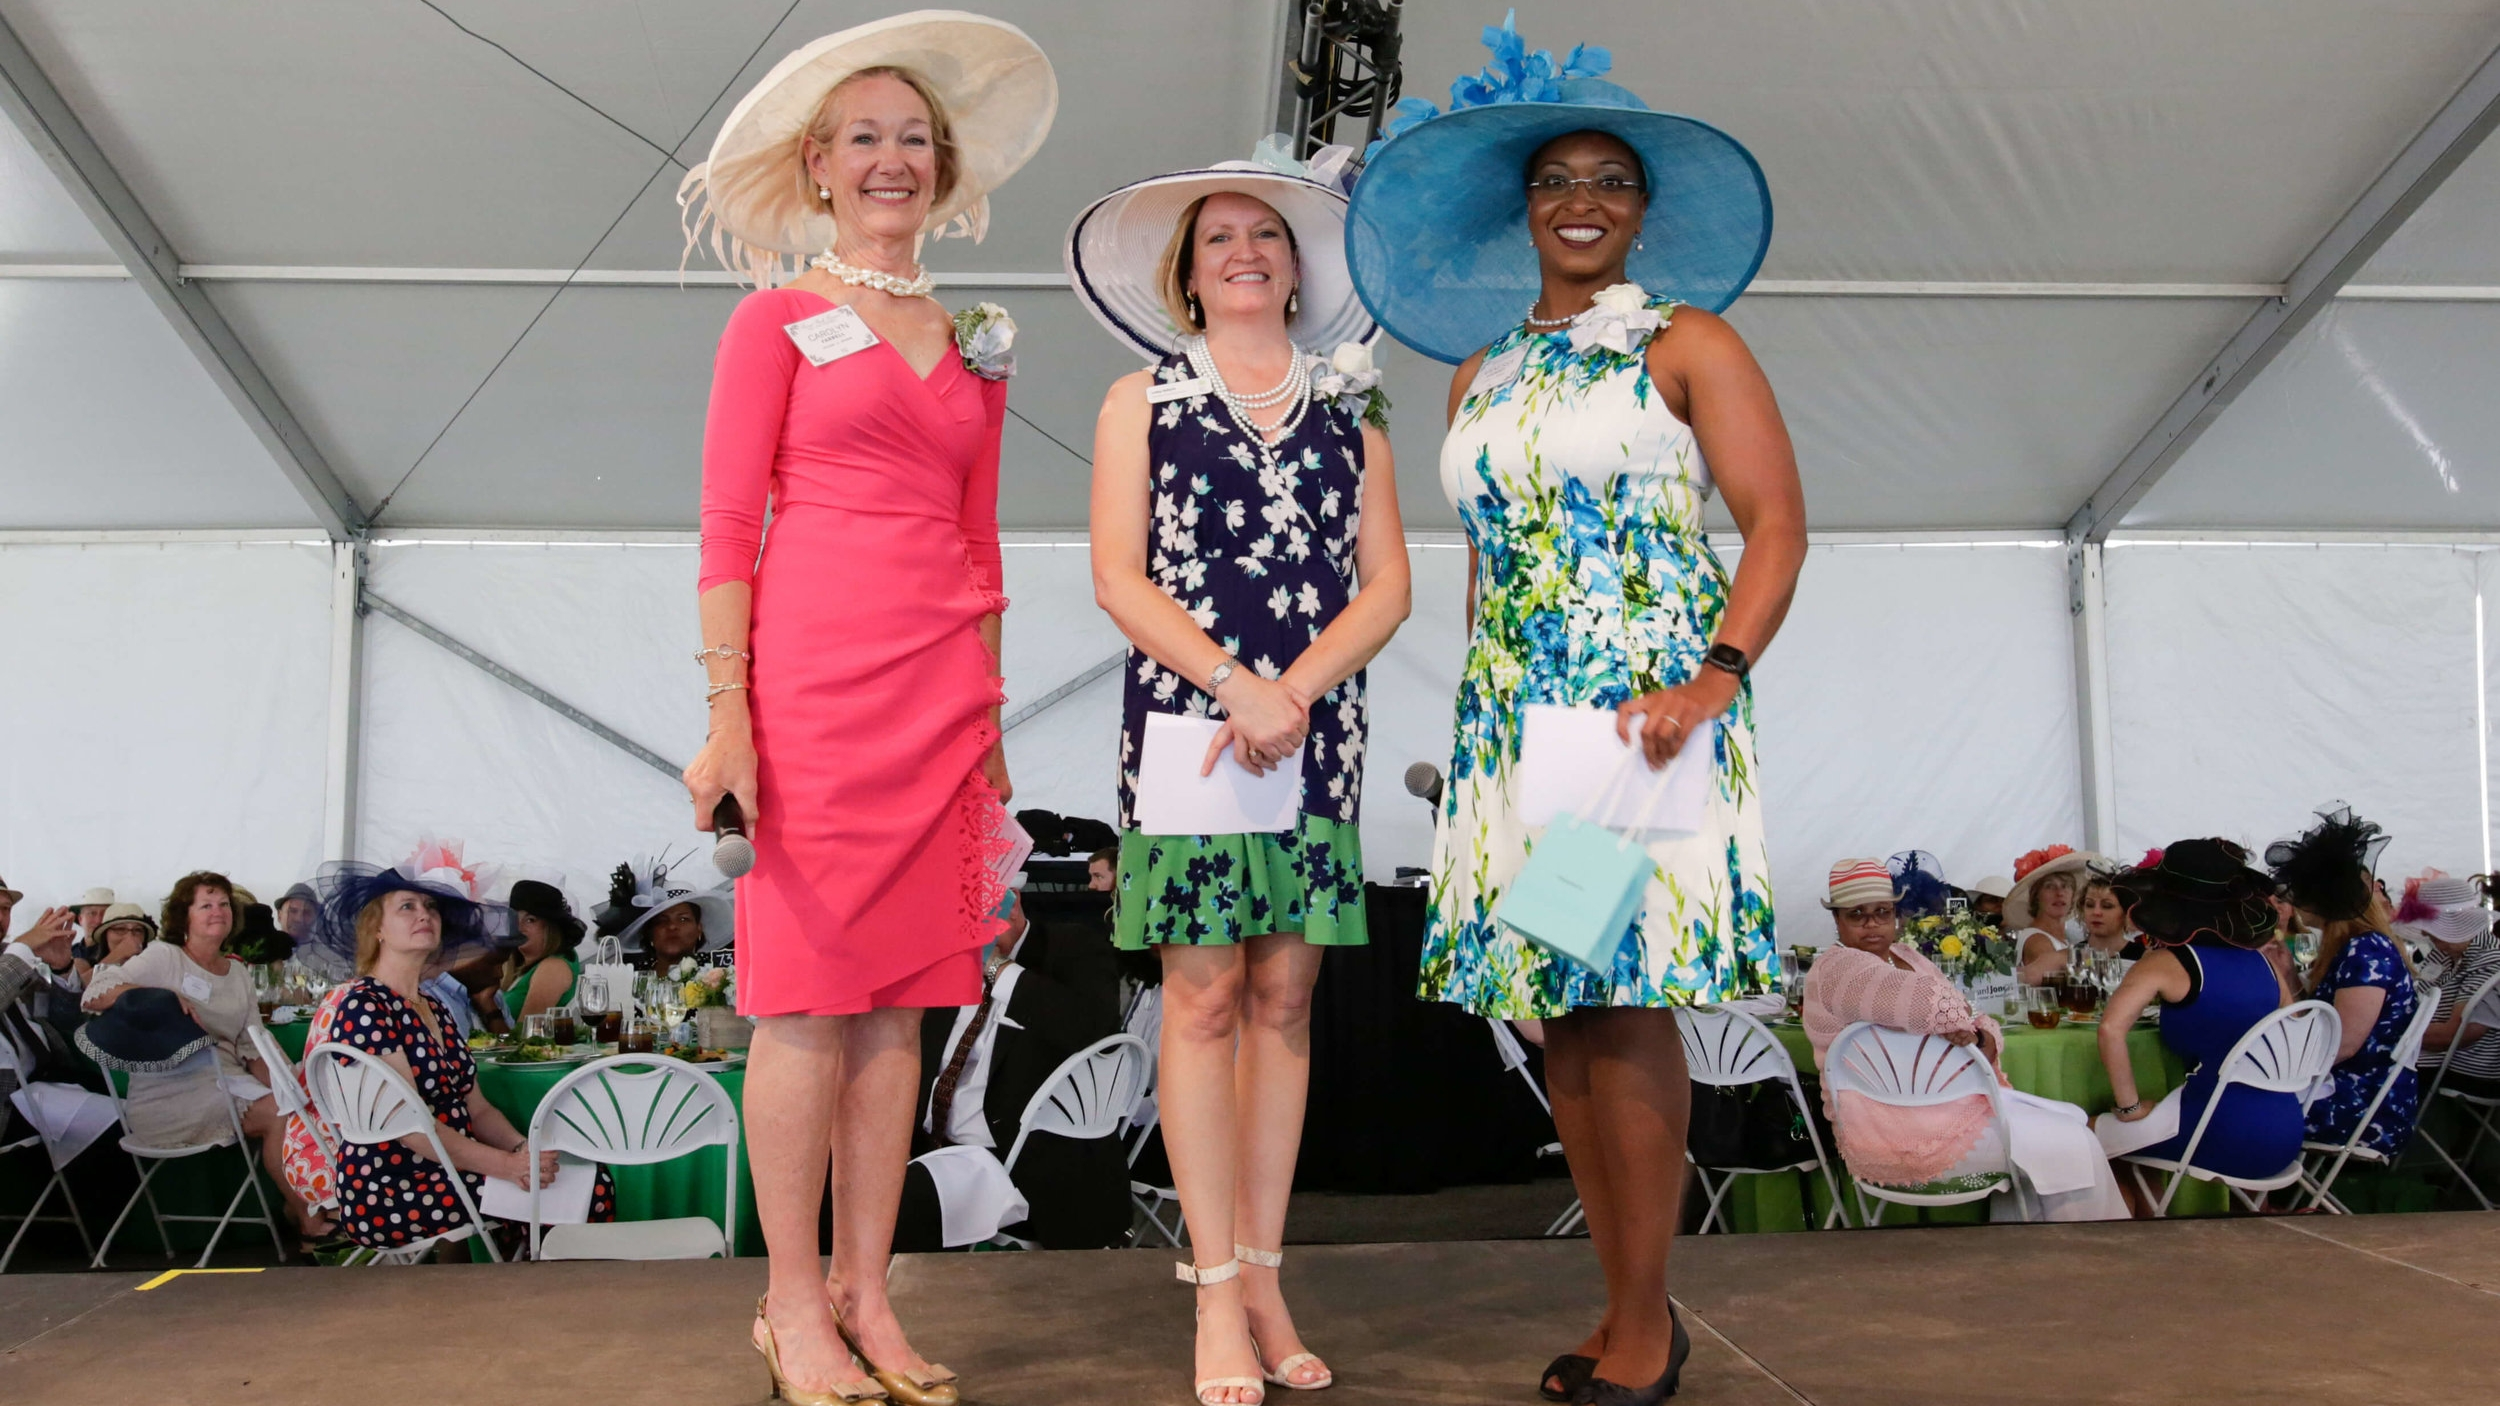 FPF President & Executive Director Lesley S. Hoffarth (center) with event co-chairs Carolyn G. Farrell and Vanessa F. Cooksey